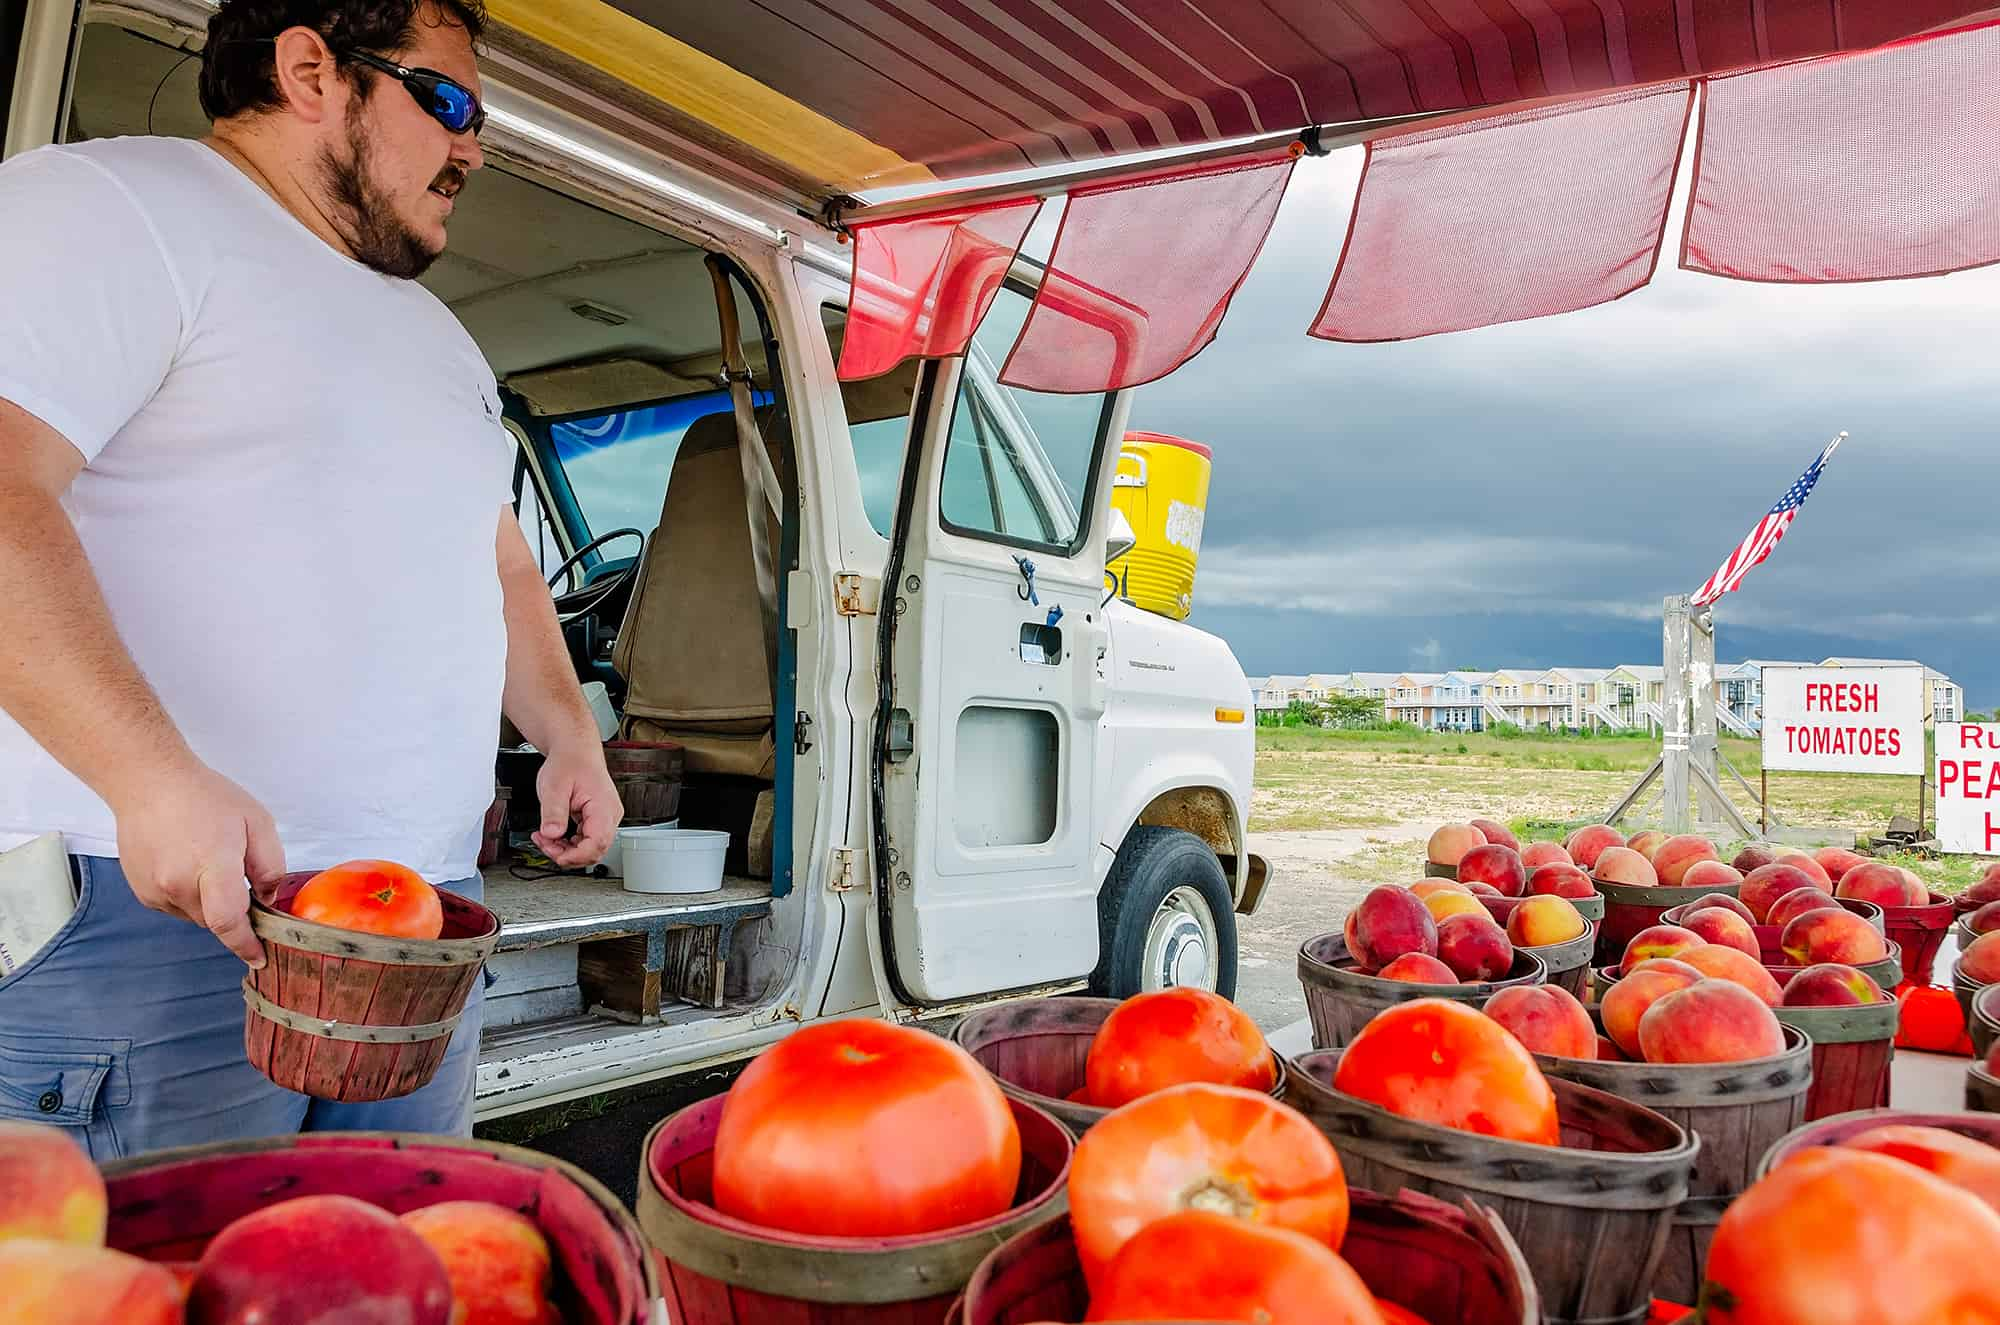 Fruit stand owner places Celebrity tomatoes on his table in Pass Christian Mississippi